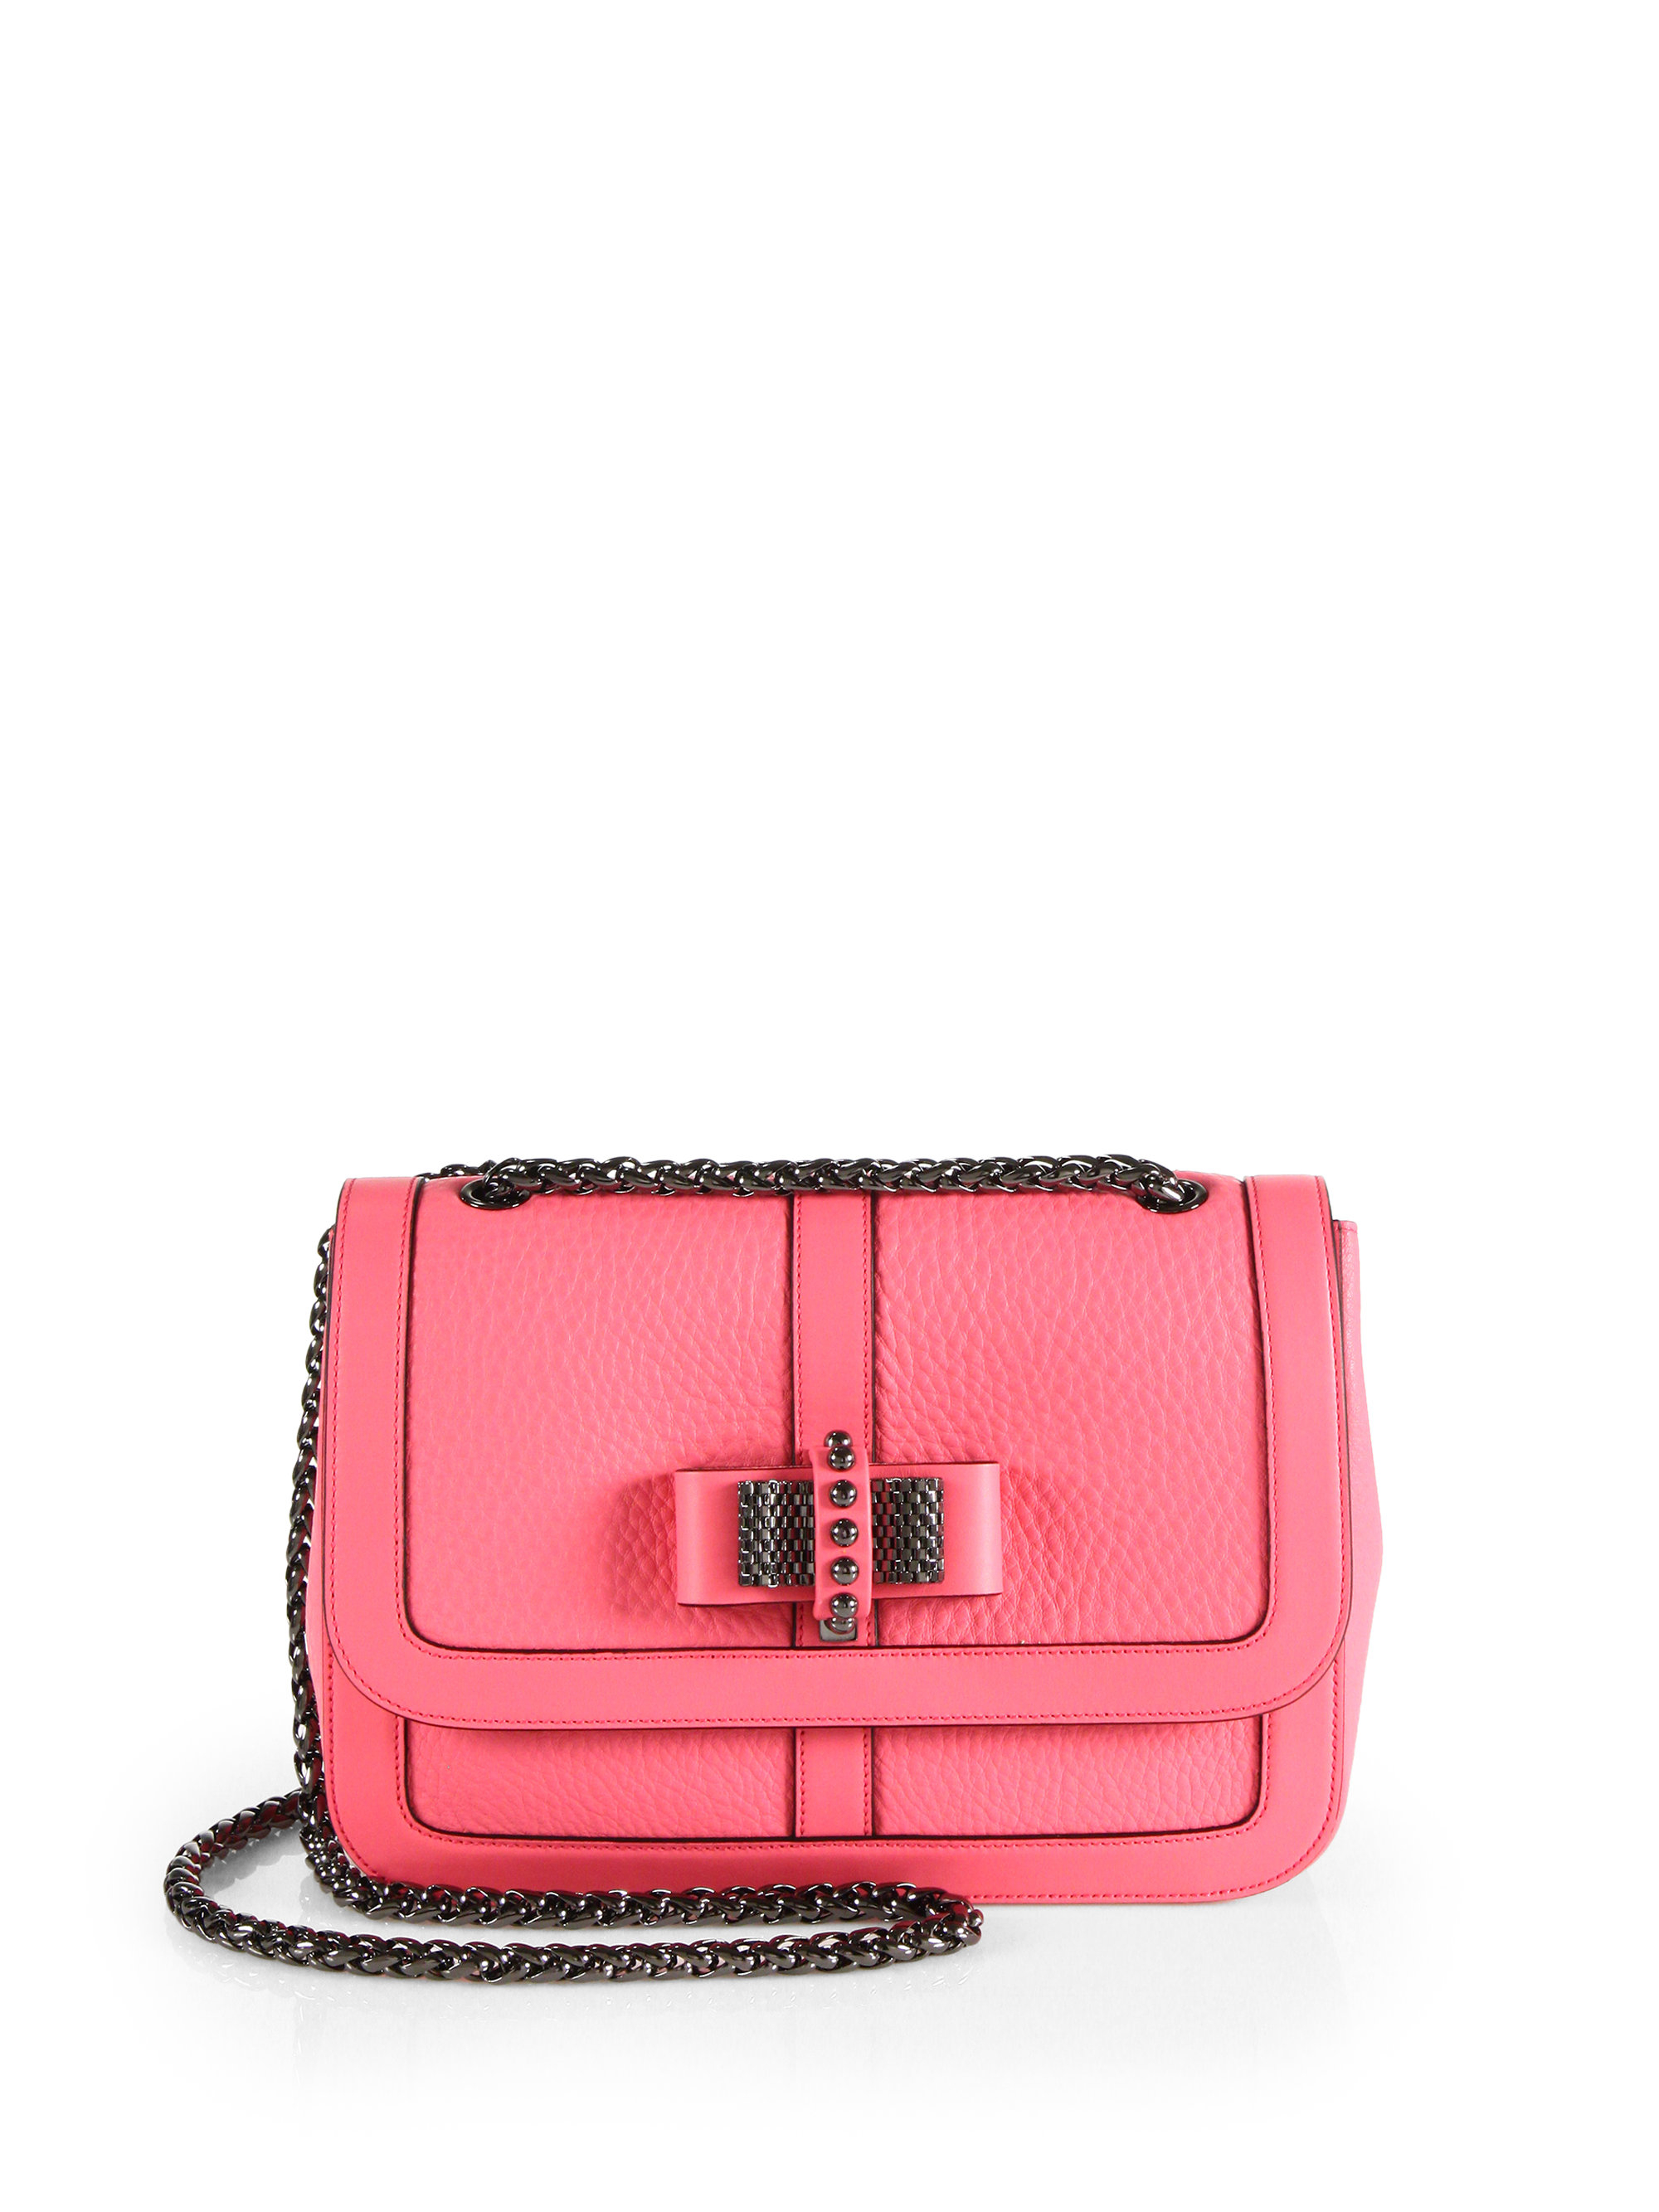 Christian louboutin Sweet Charity Bow-Detail Leather Flap Bag in .